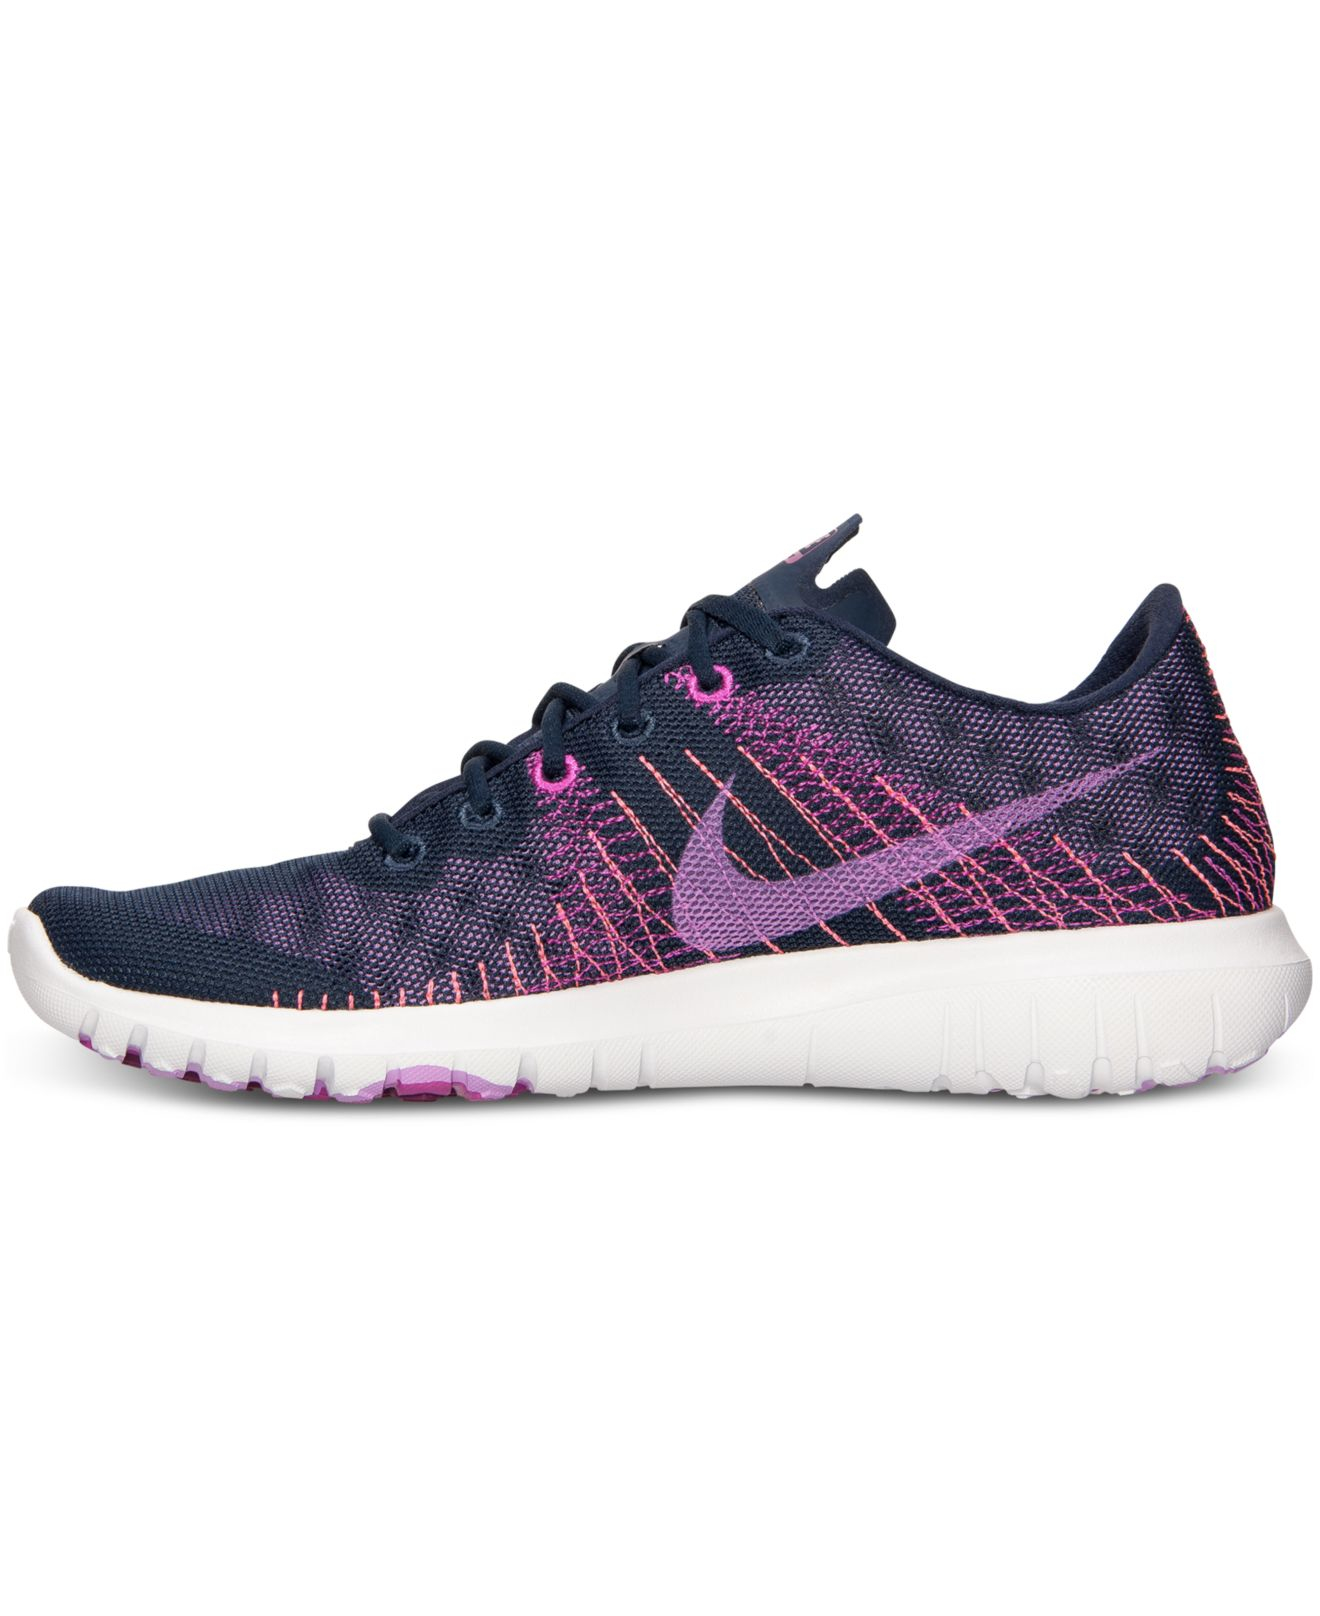 Lyst - Nike Women s Flex Fury Running Sneakers From Finish Line in ... 4d558f2da